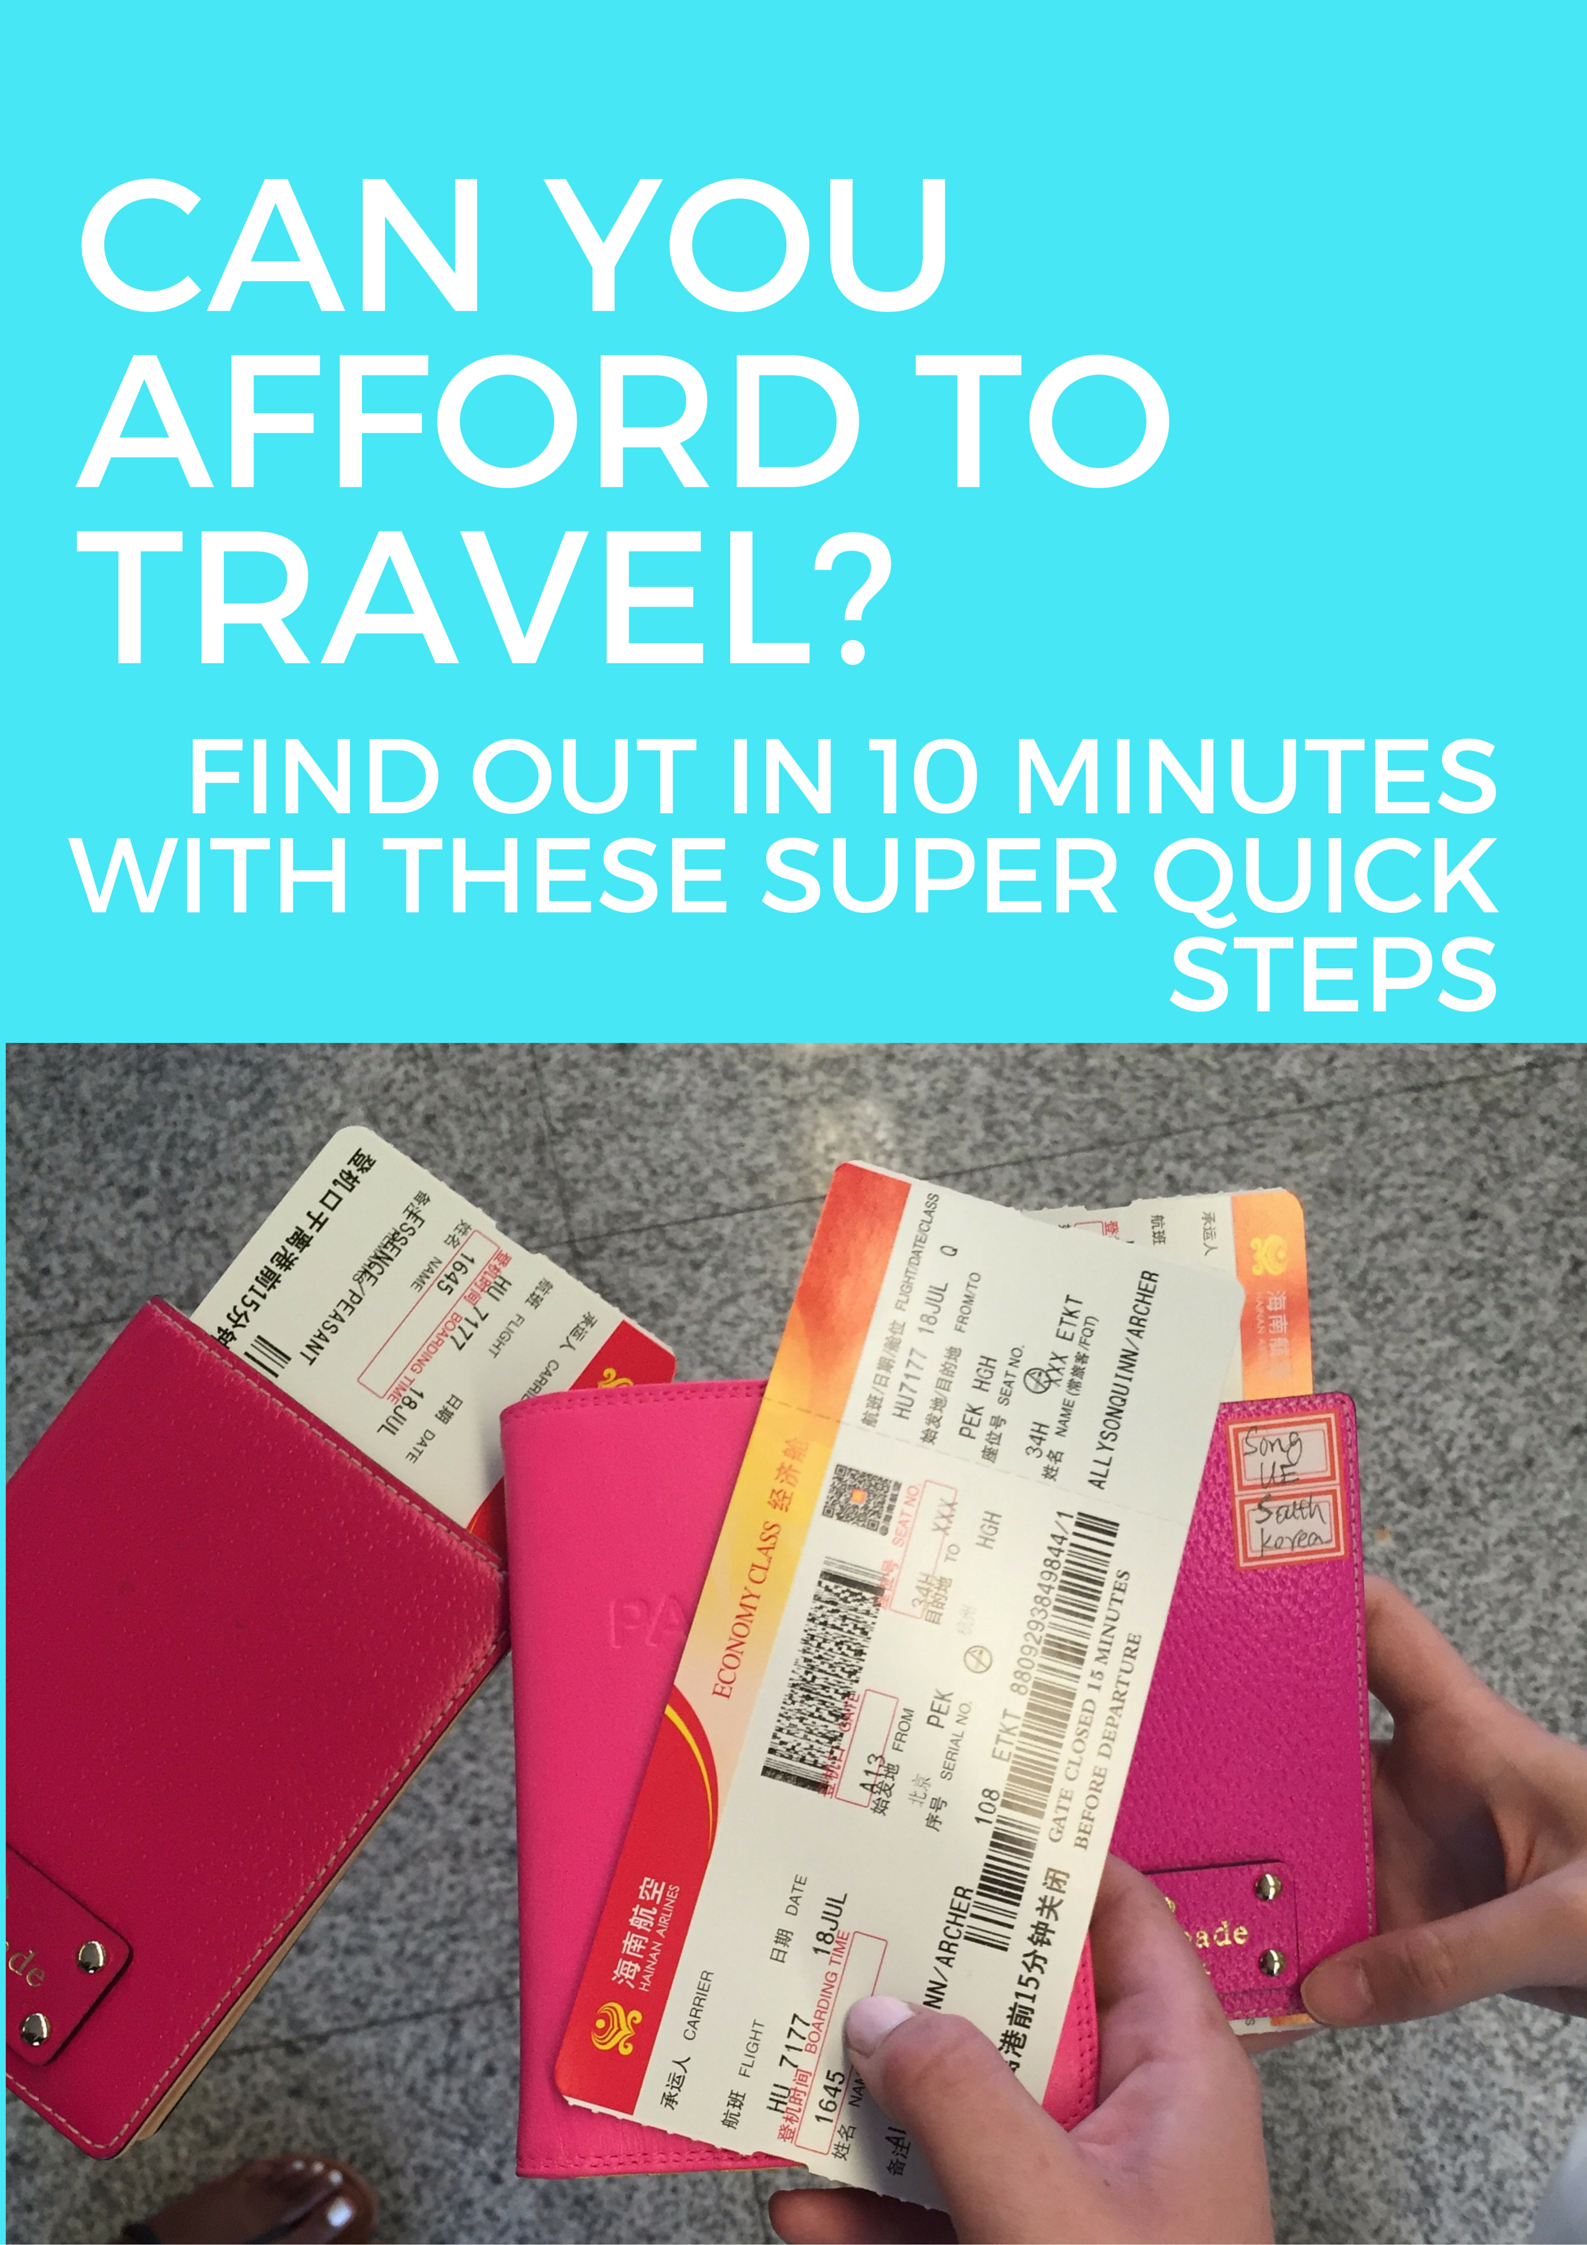 Can you afford to travel? Find out in 10 minutes with these quick steps